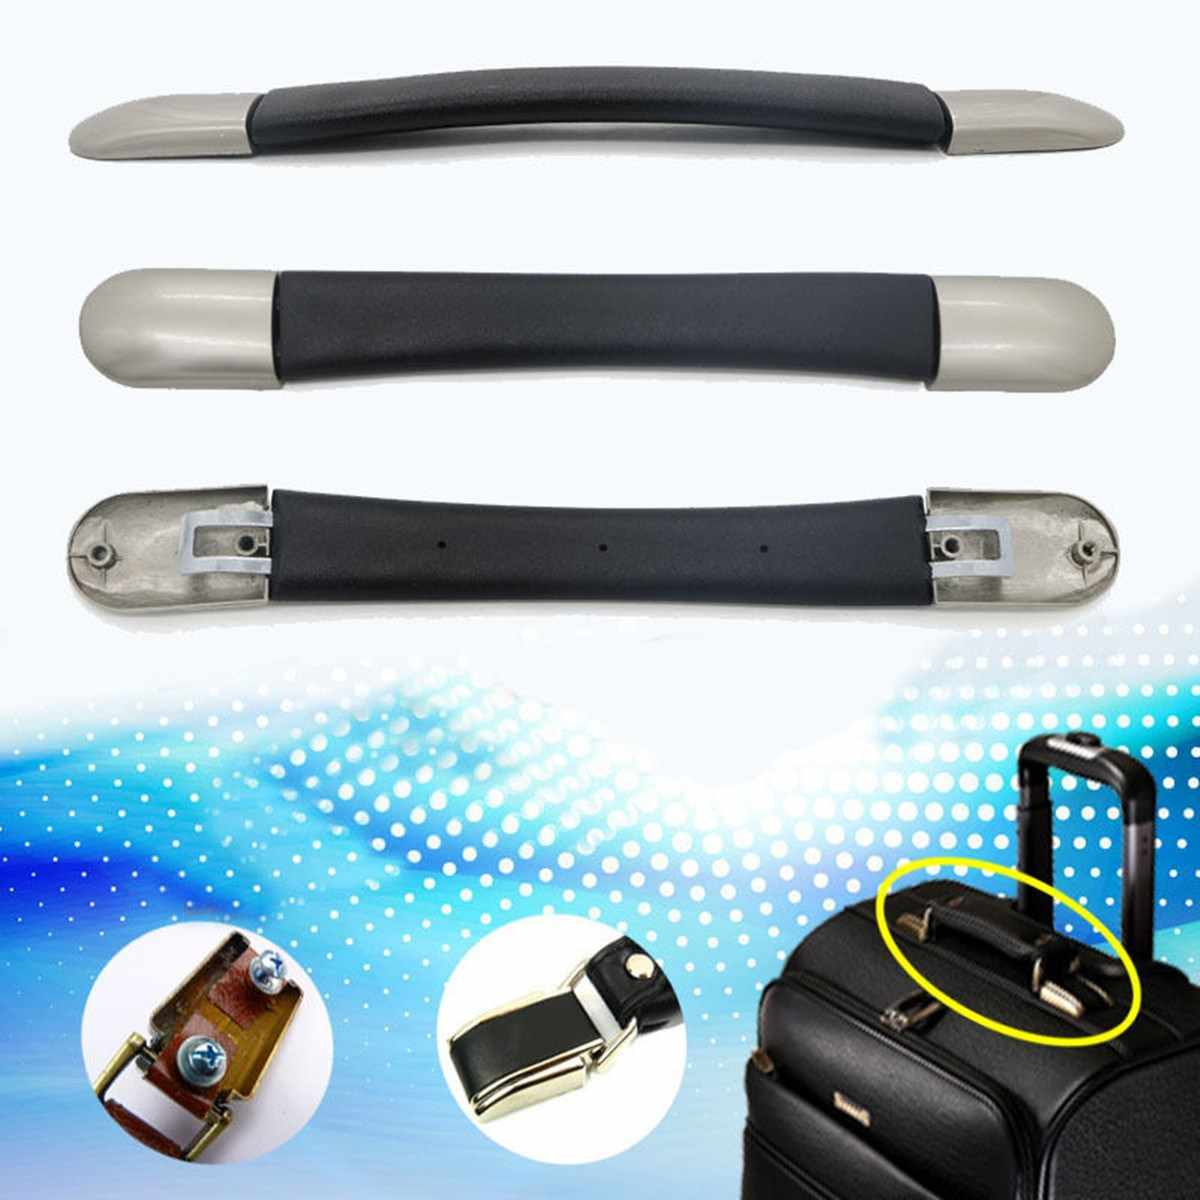 c8f81b716f1 16cm Replacement Spare Strap for Suitcase Luggage Handle Grip Spare Fix  Holders Box Pull Carry Strap